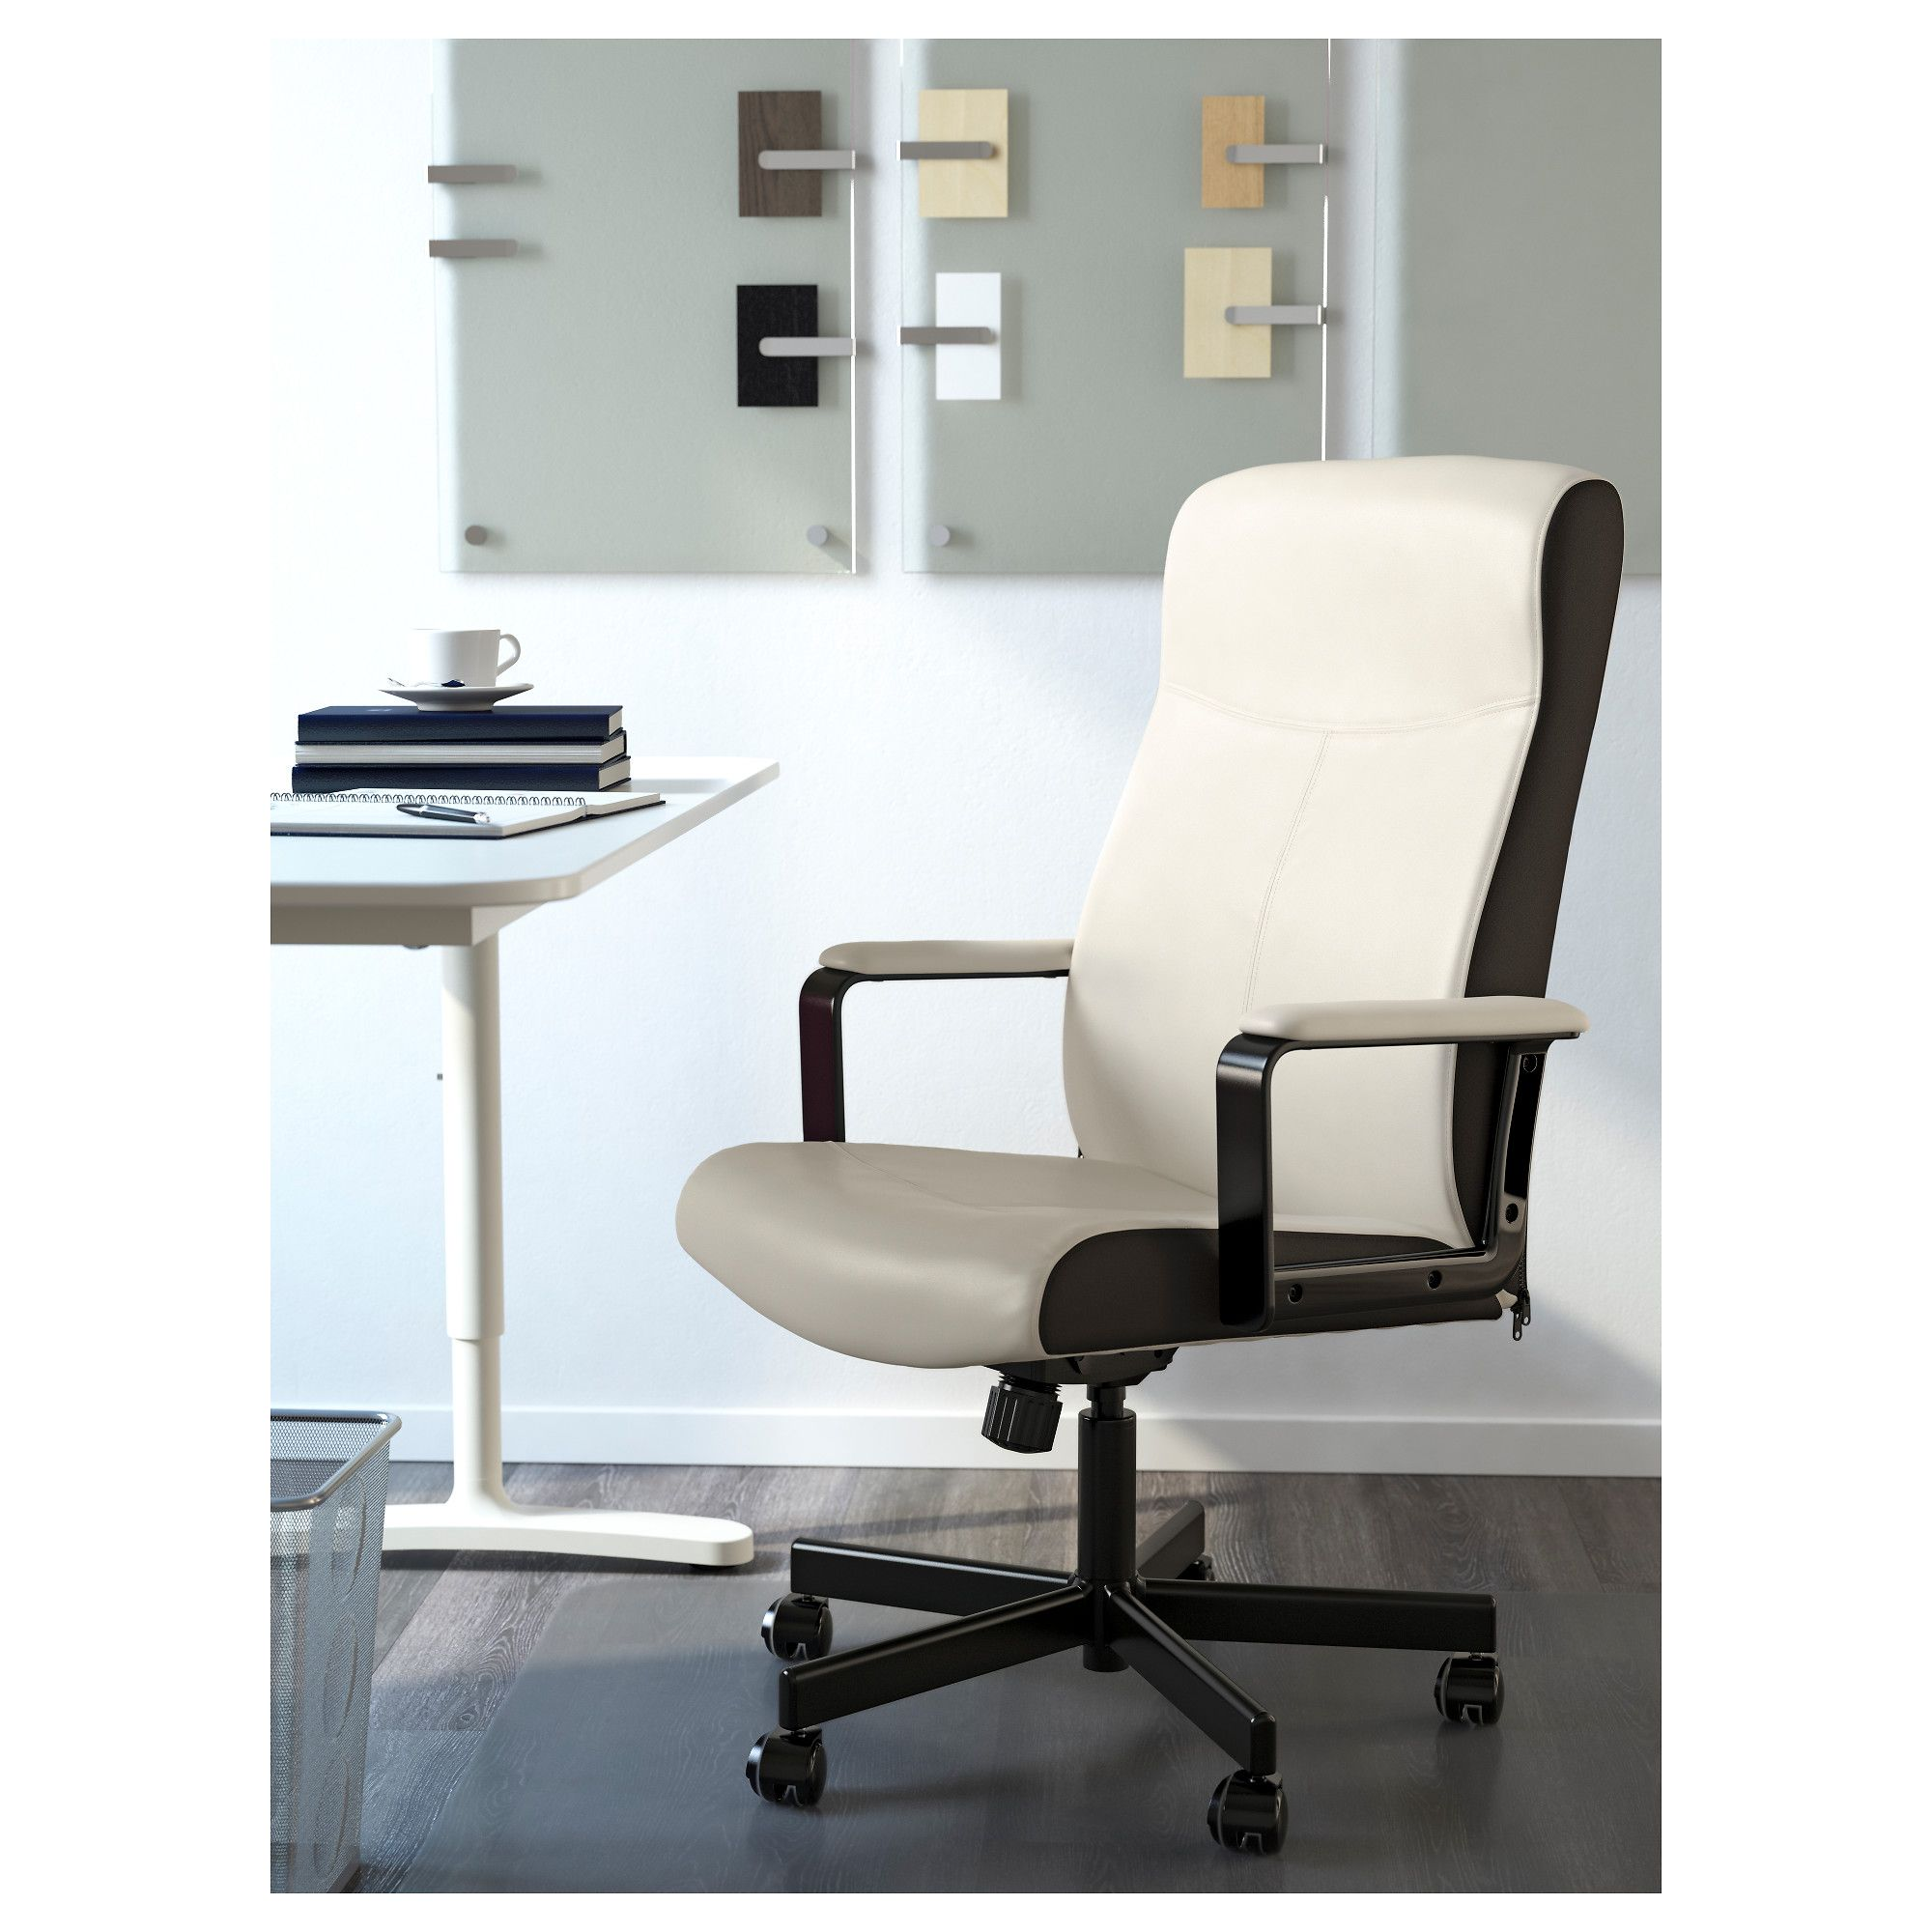 Strange Ikea Millberget Swivel Chair Kimstad White In 2019 Pabps2019 Chair Design Images Pabps2019Com